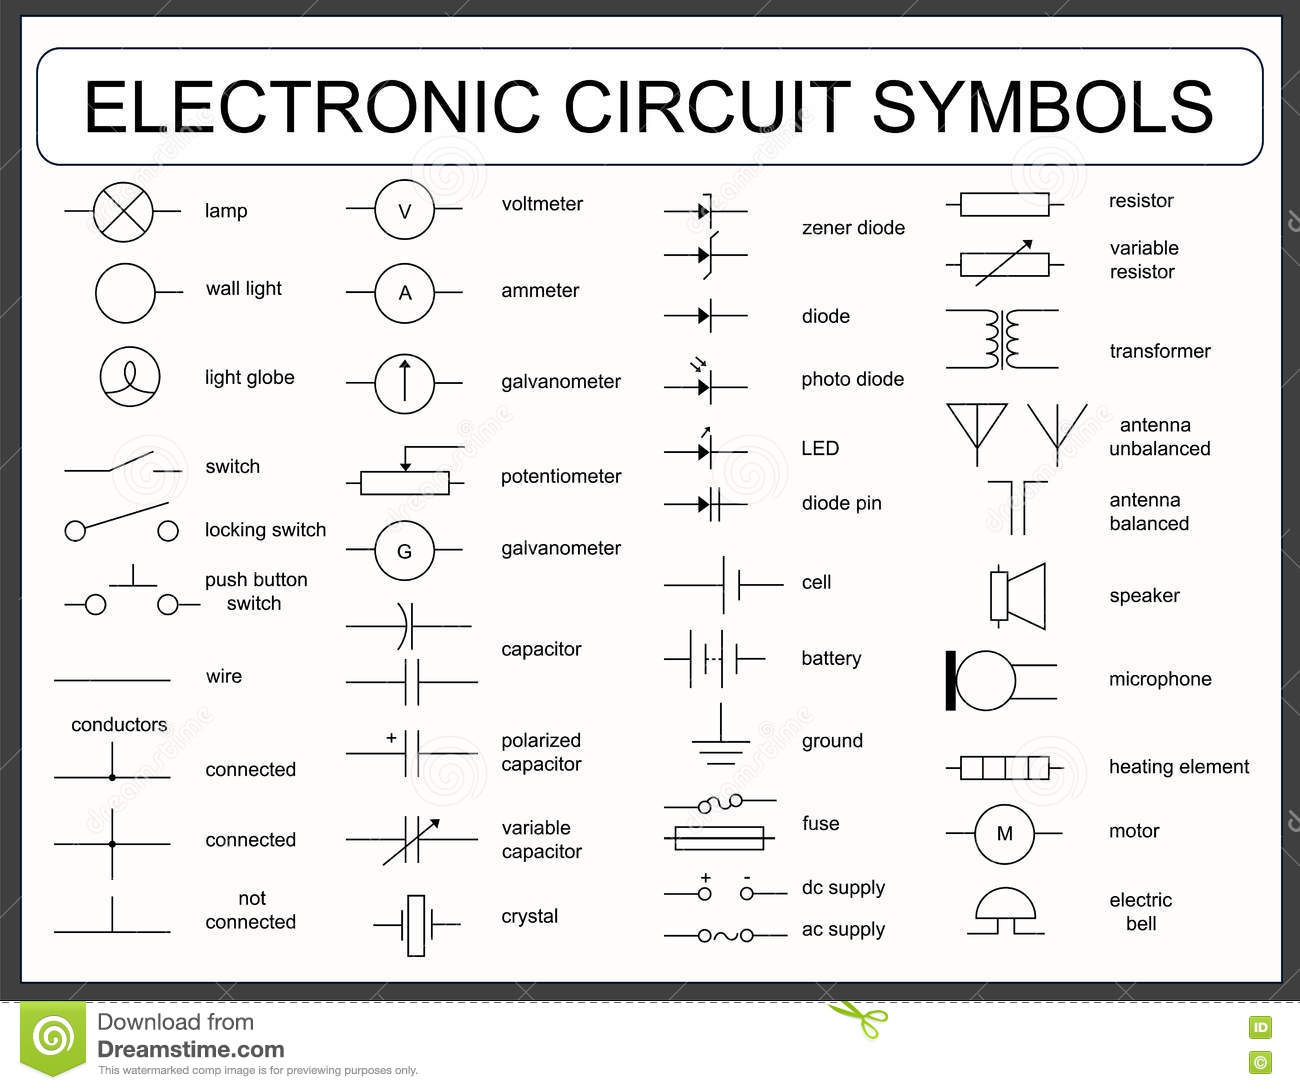 aircraft wiring diagram legend ver wiring diagram rh 4 nmasr kizilaymadensuyu de Motorcycle Wiring Schematics Legend electrical schematic legend